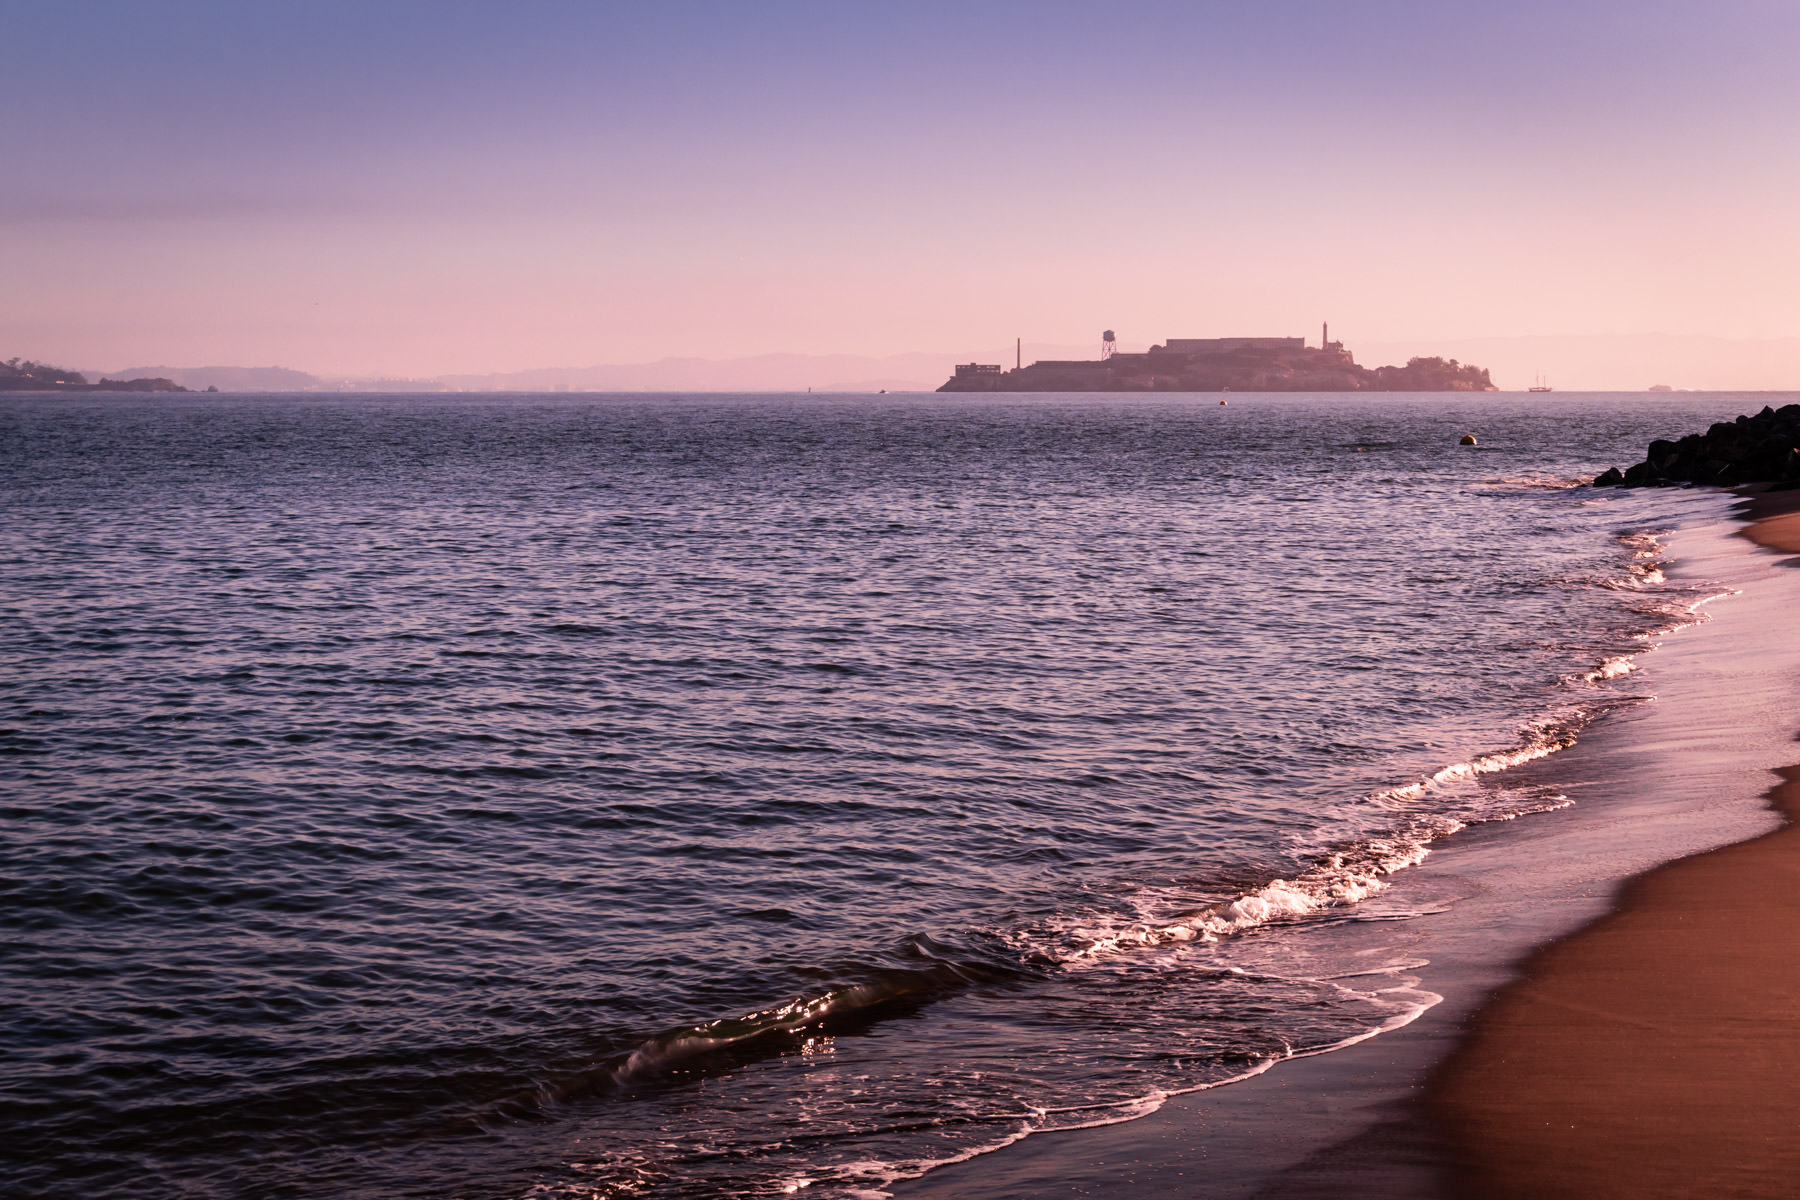 The morning sun lights Alcatraz and San Francisco Bay, as seen from the beach at the city's Crissy Field.